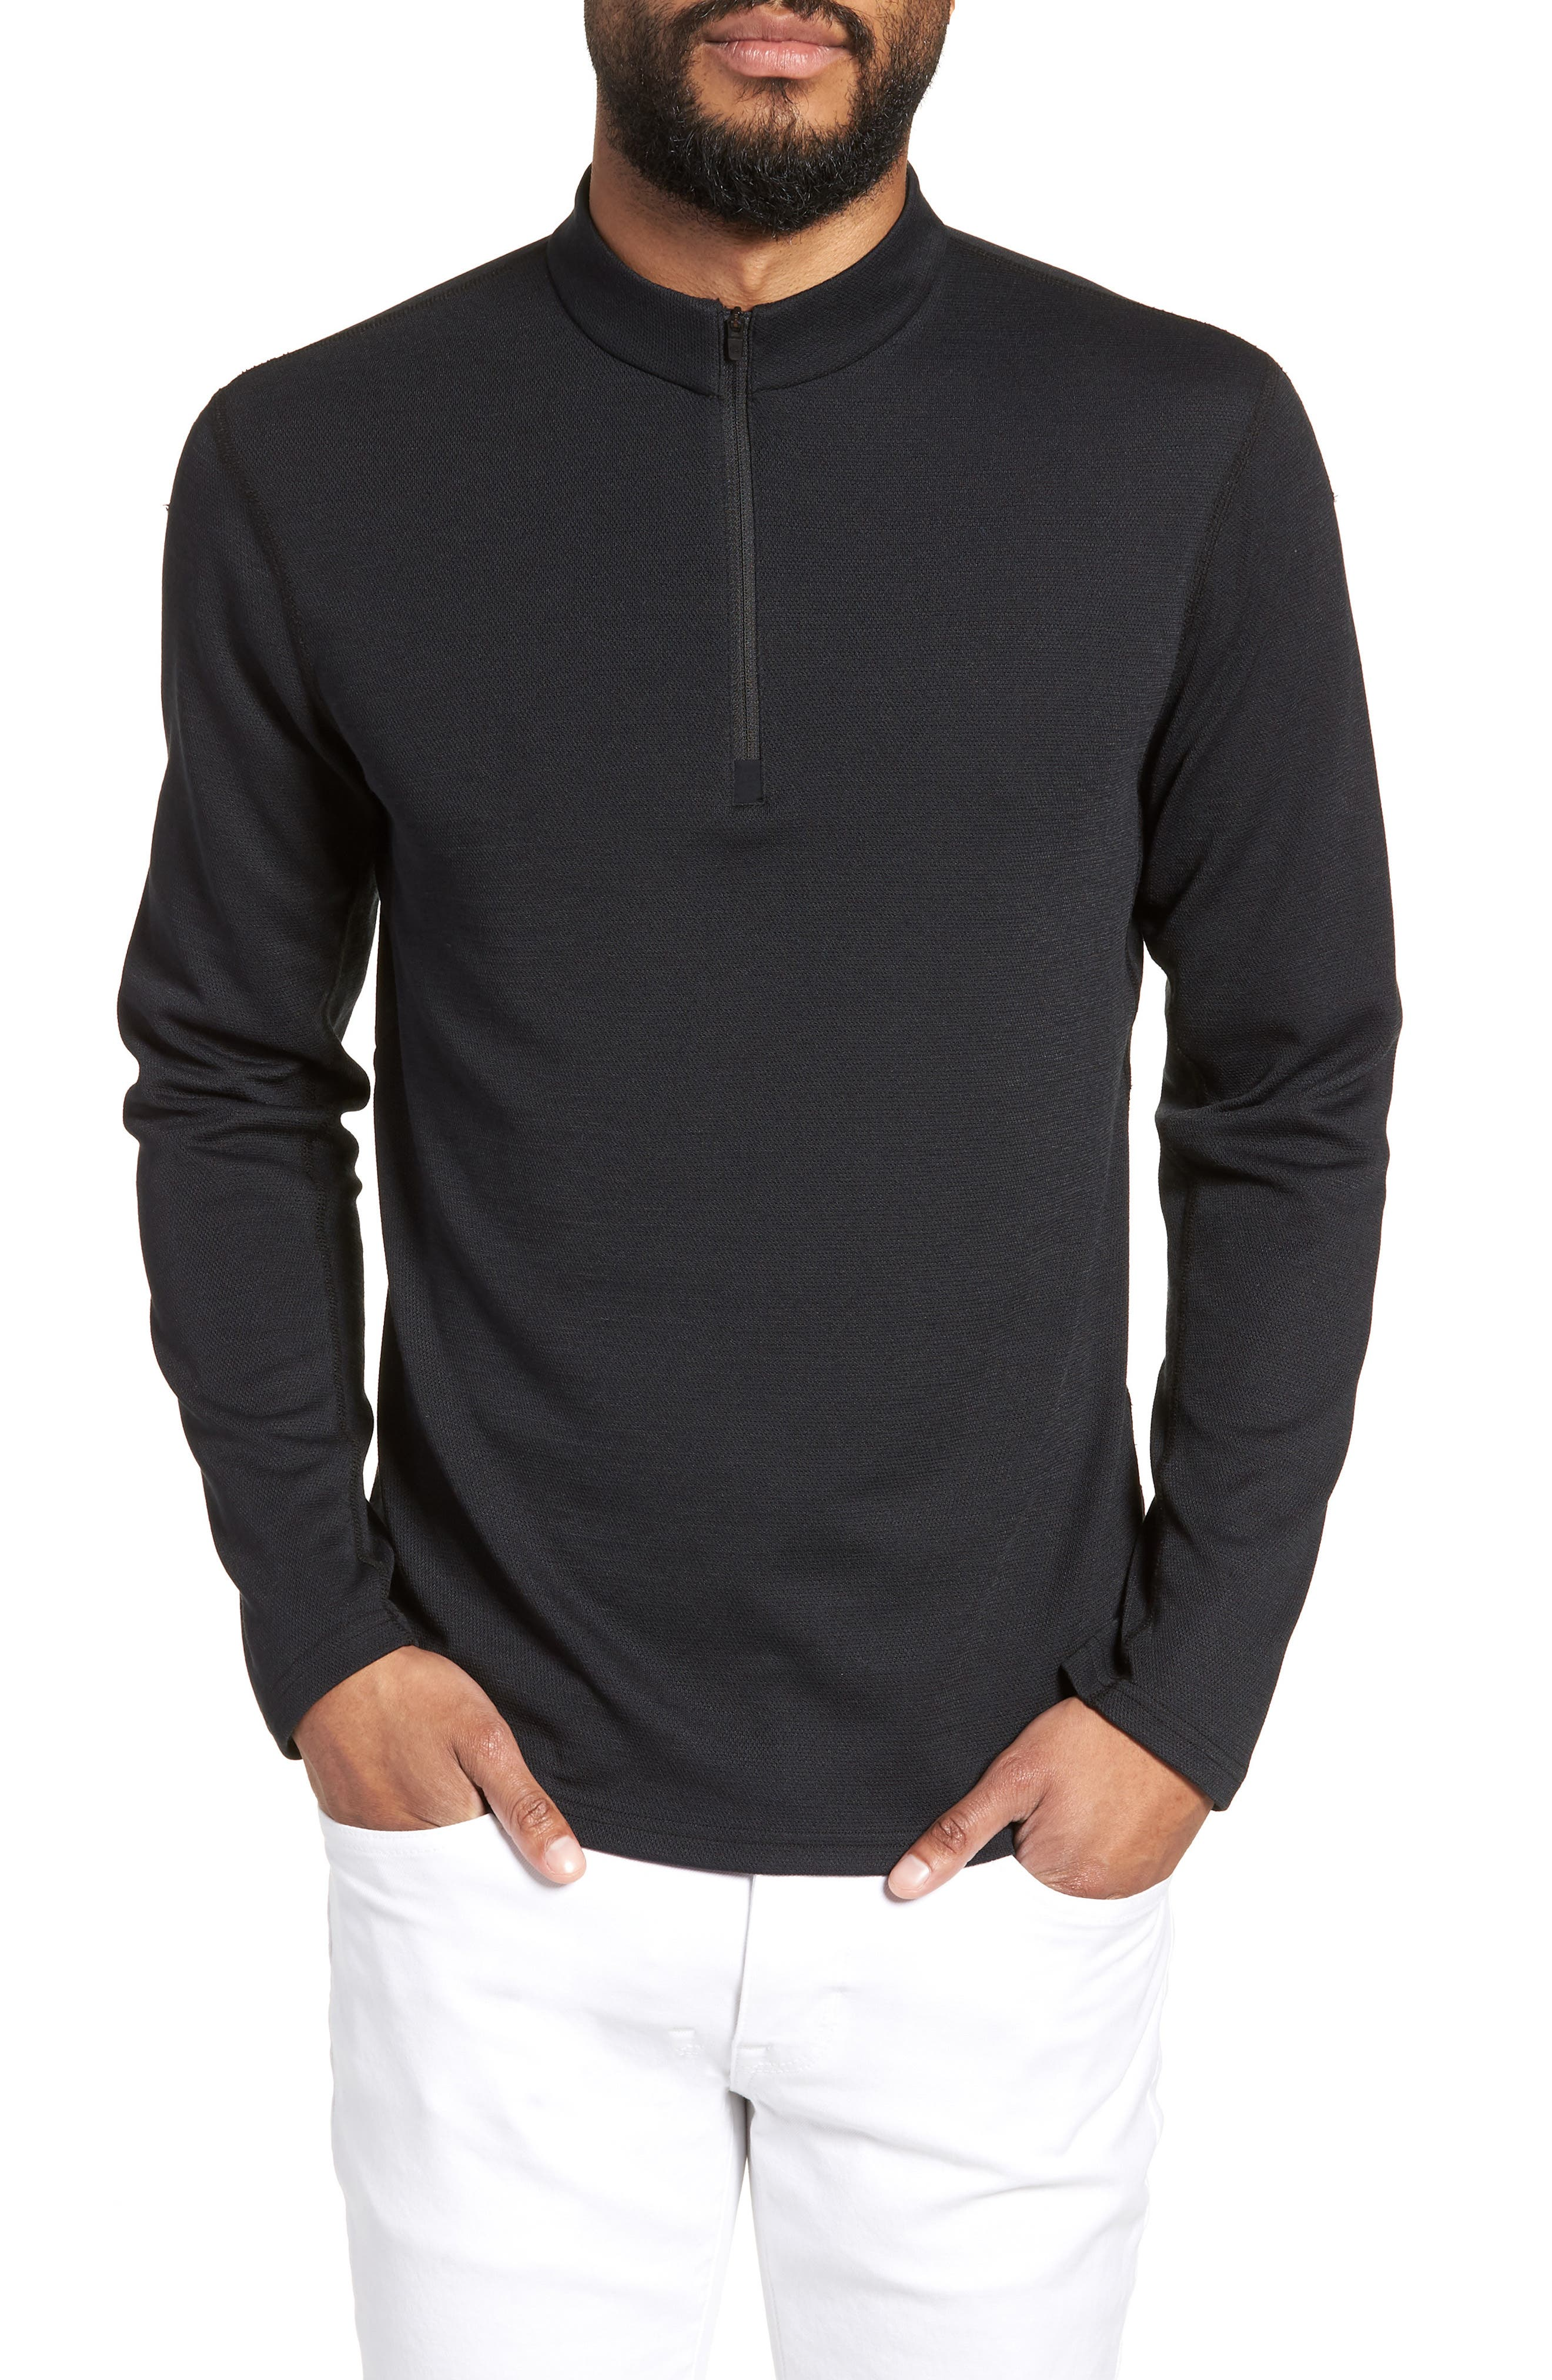 Powerdry Trail Quarter Zip Pullover,                             Main thumbnail 1, color,                             001